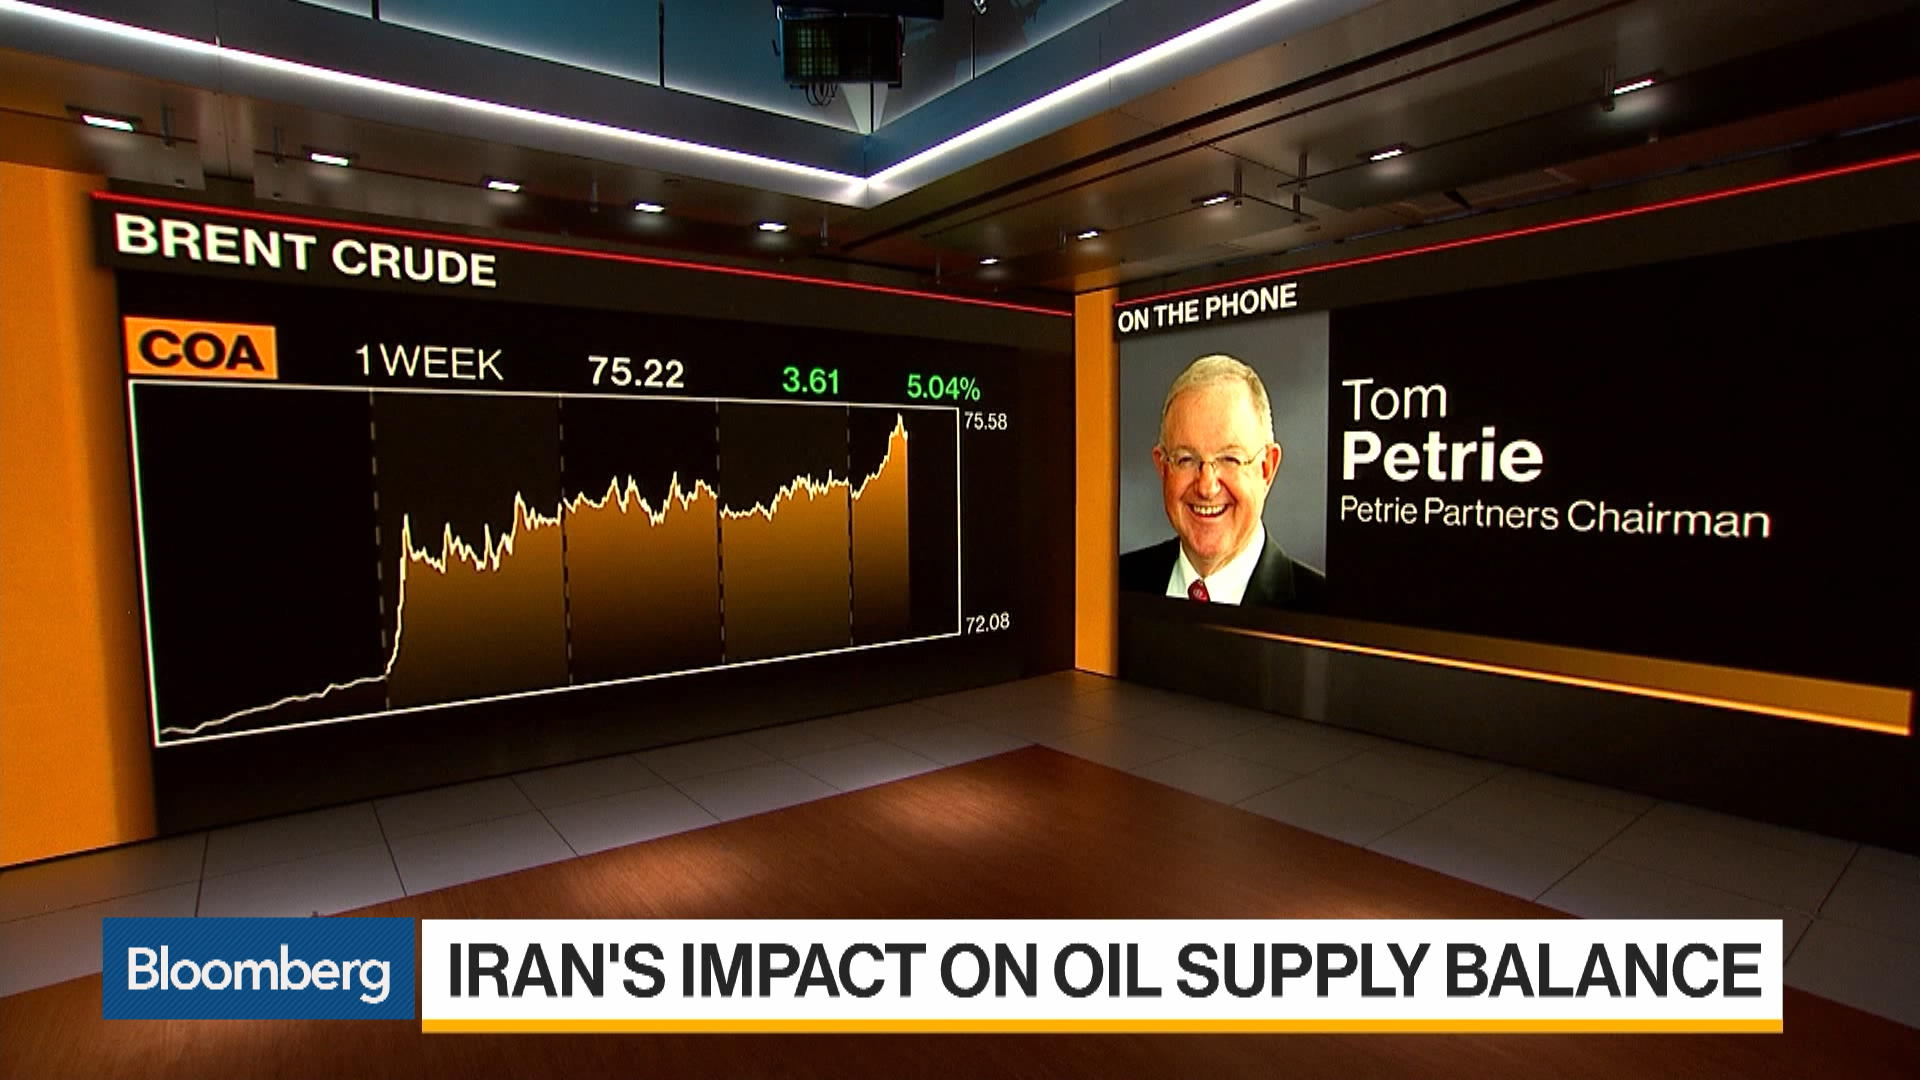 Iran's Oil Market Impact to Be More Than Expected, Petrie Says